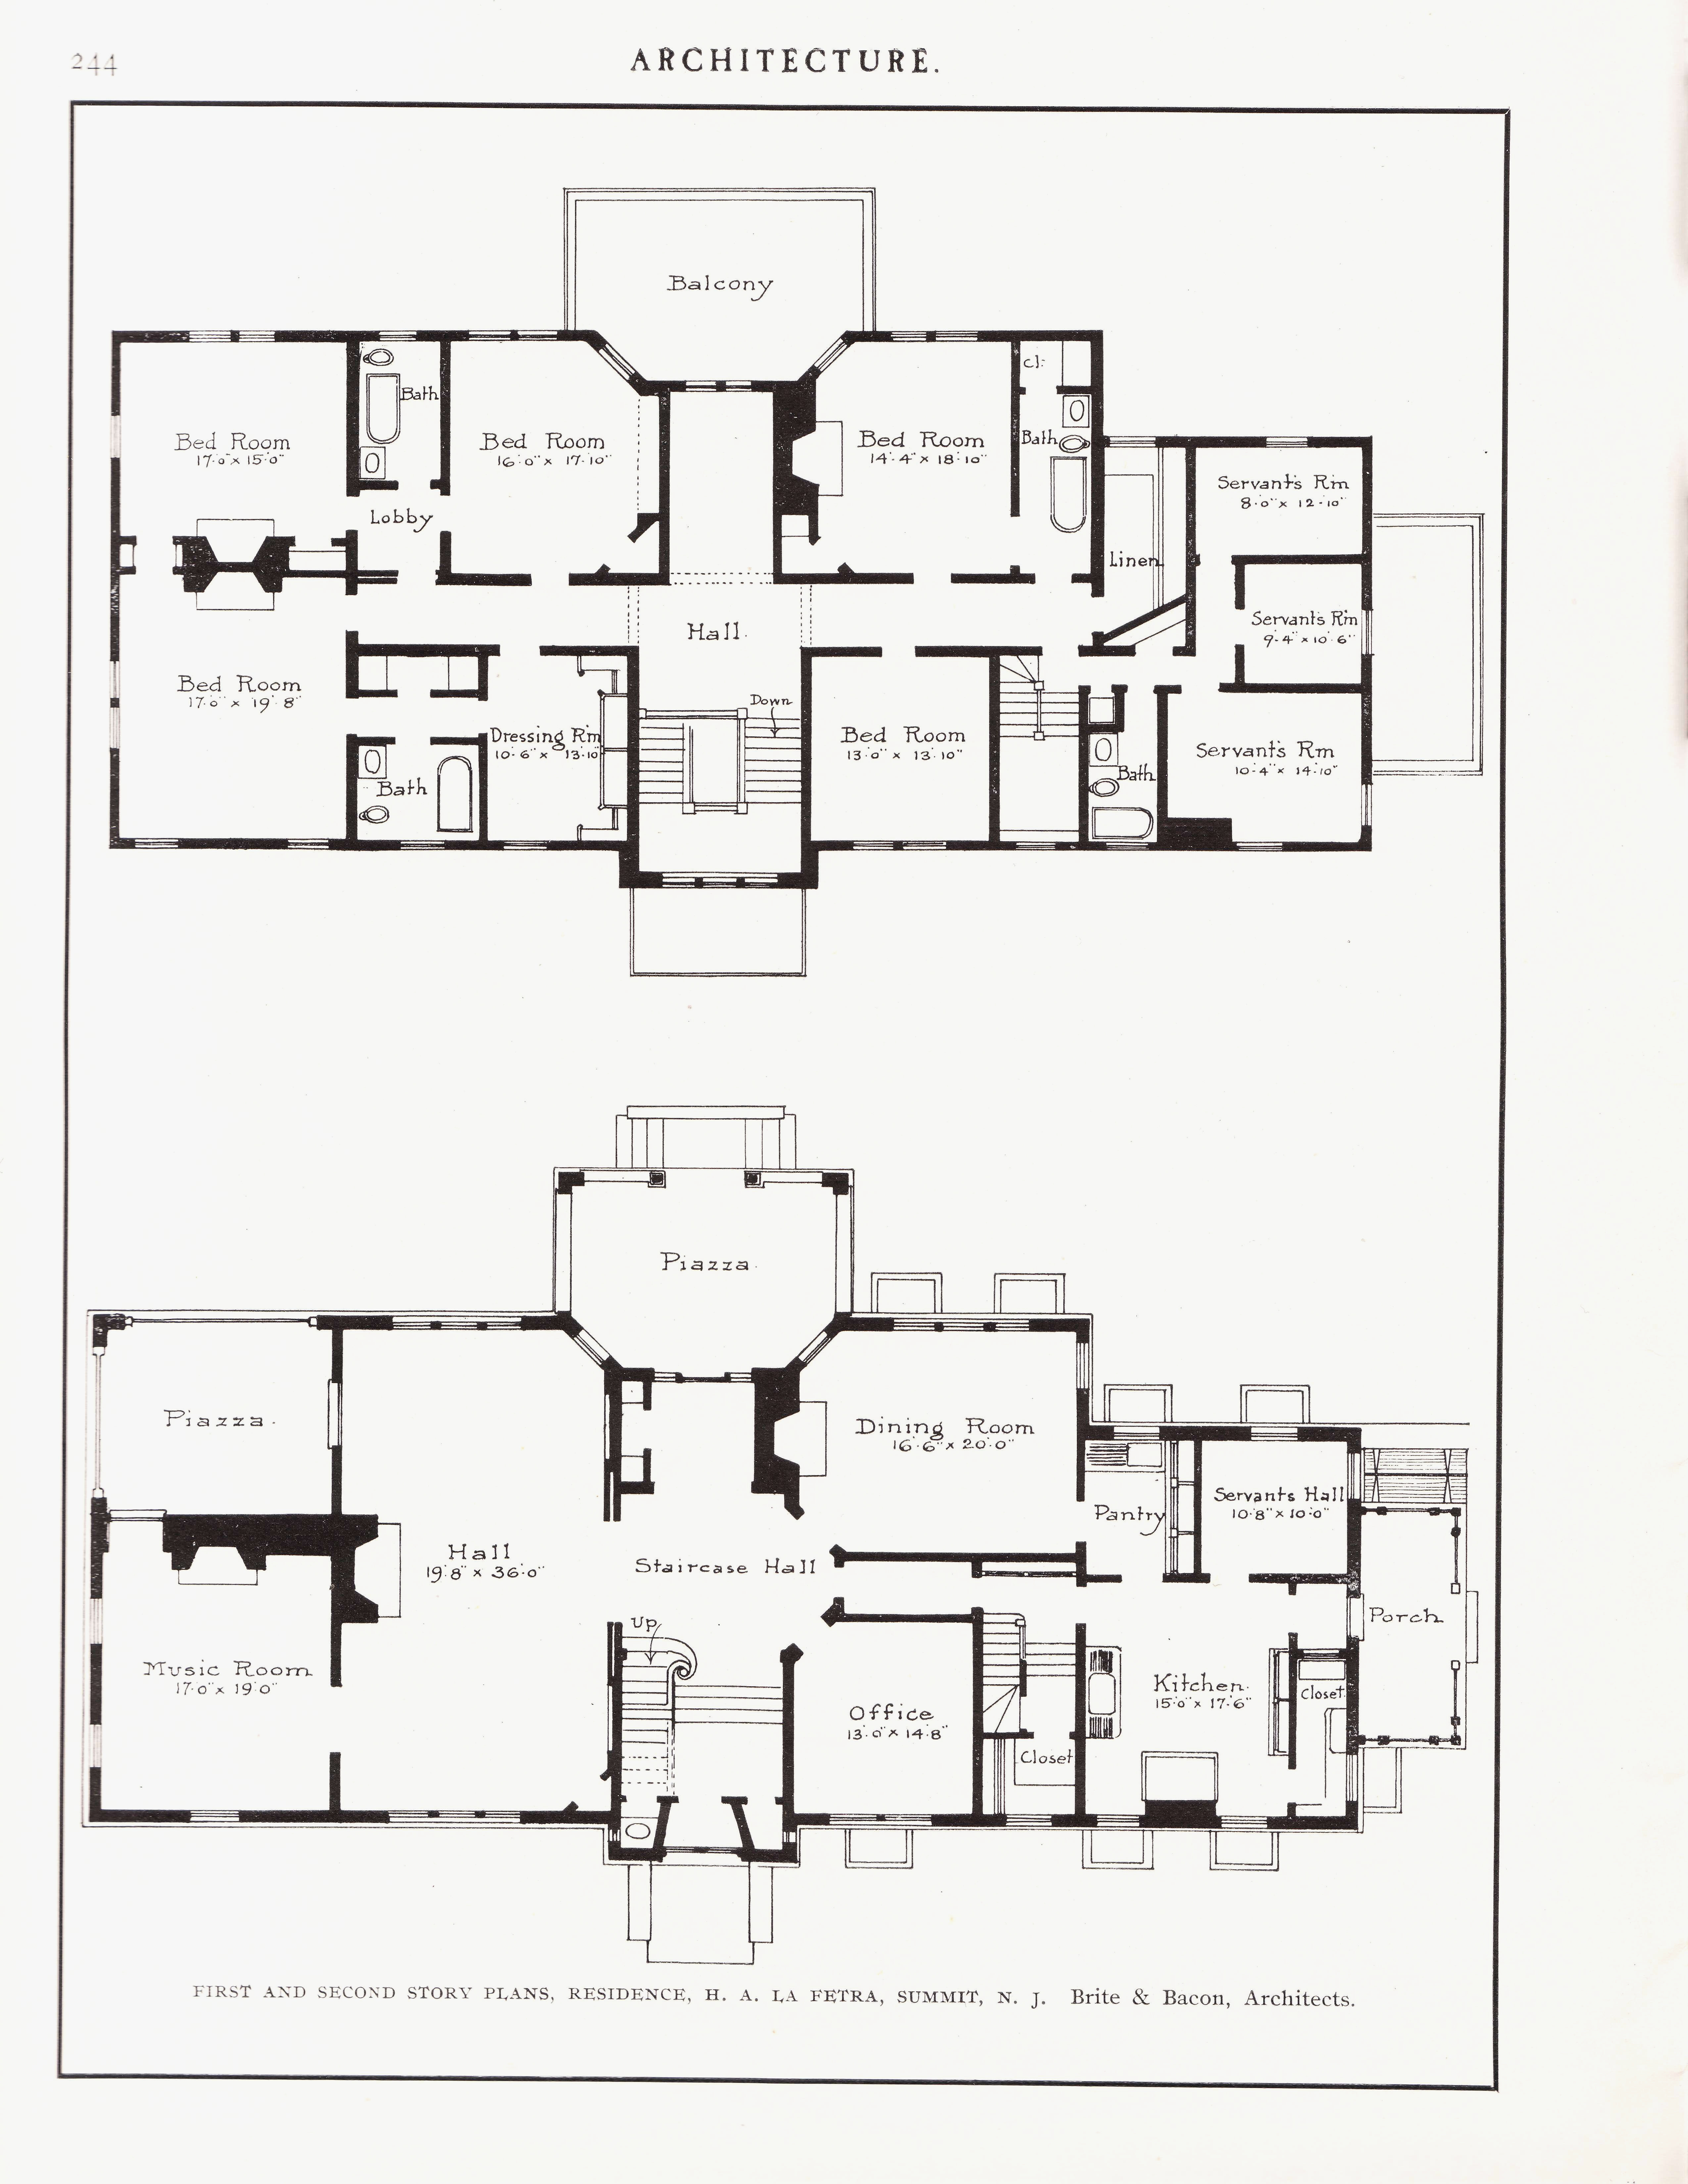 House Plans software Free New 53 Unique 3d House Plan Drawing software Free Download